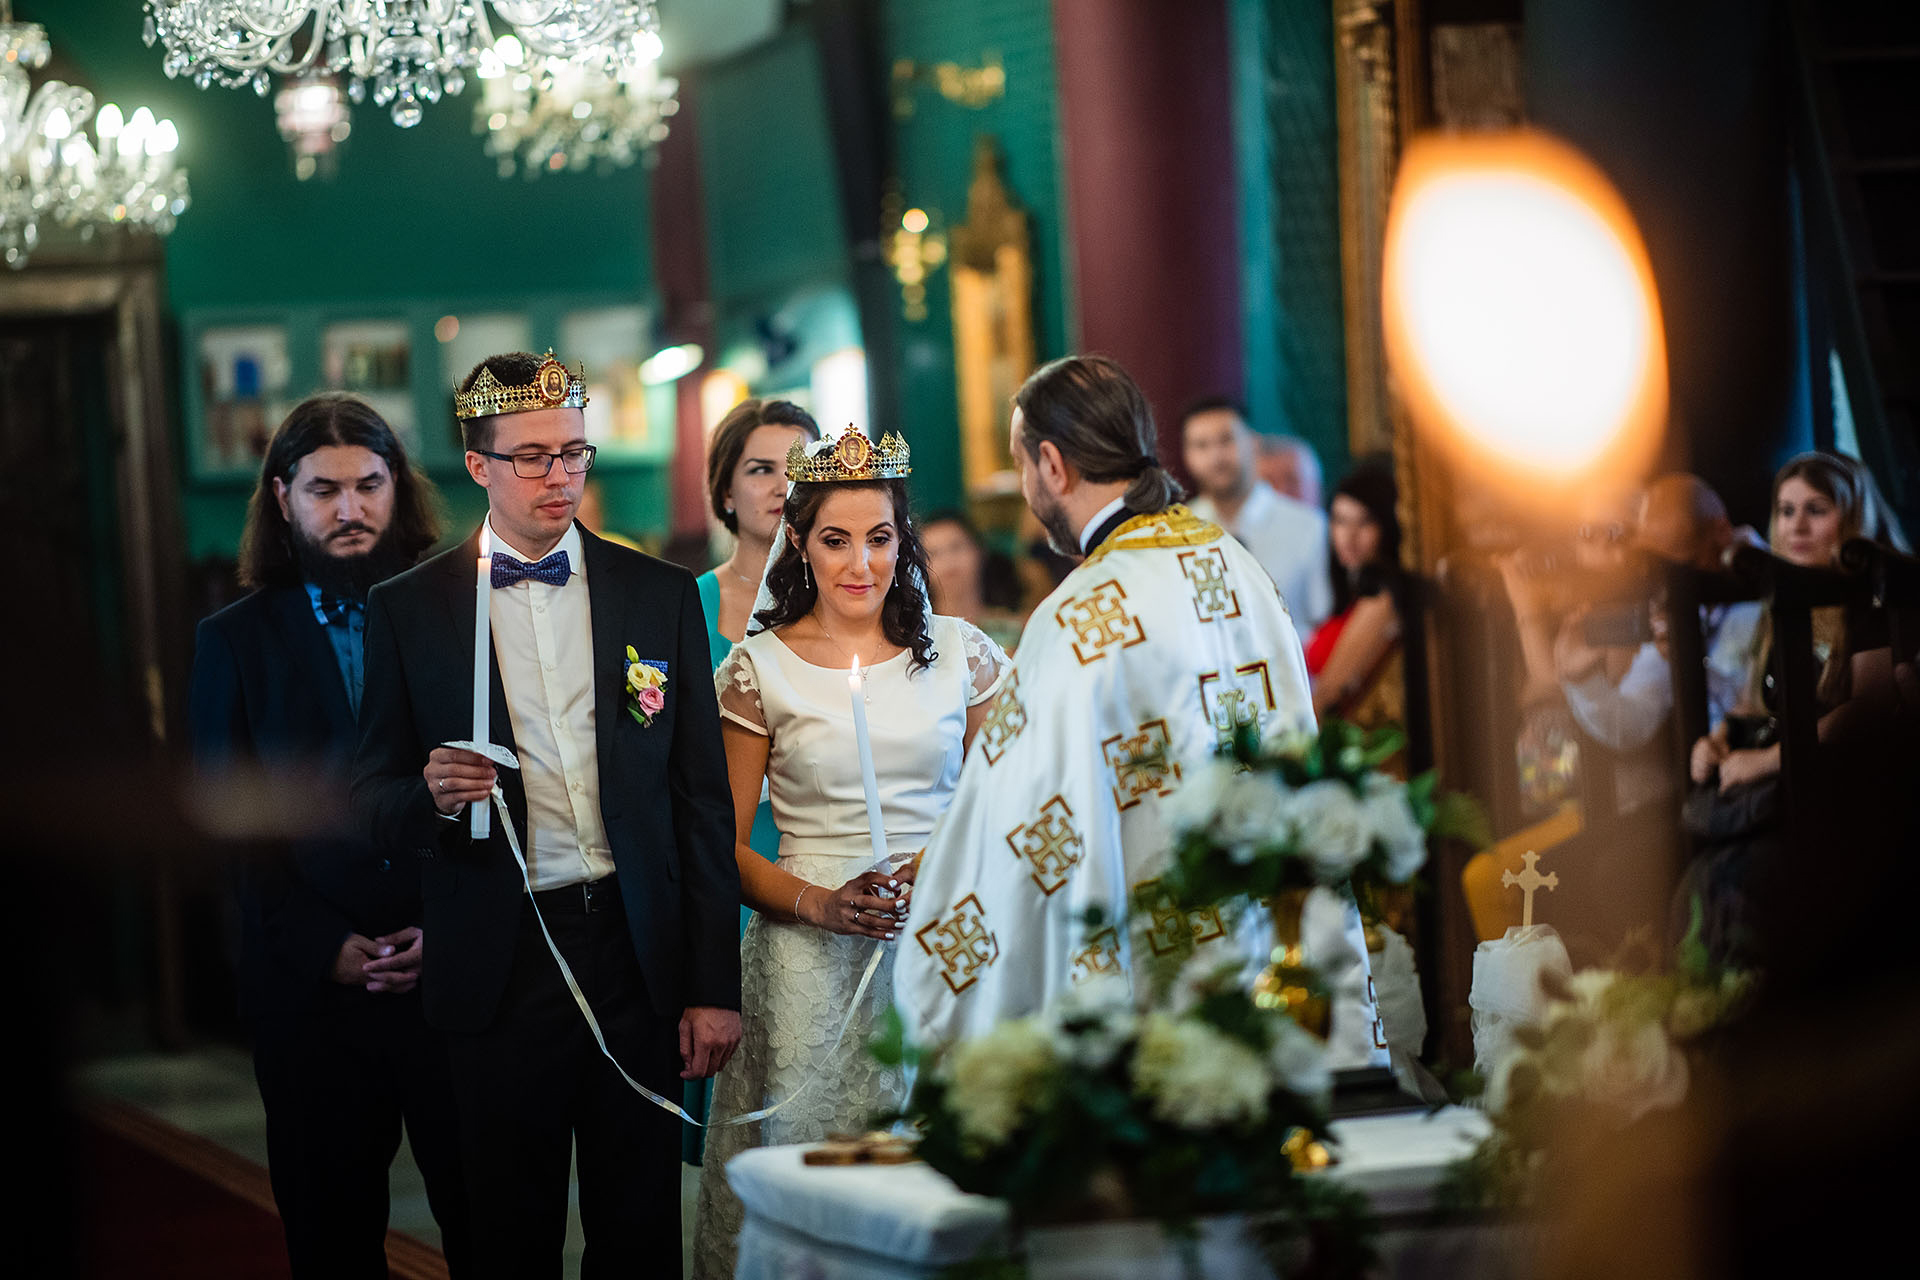 Bulgaria Church Elopement Pictures | the couple is married in a church